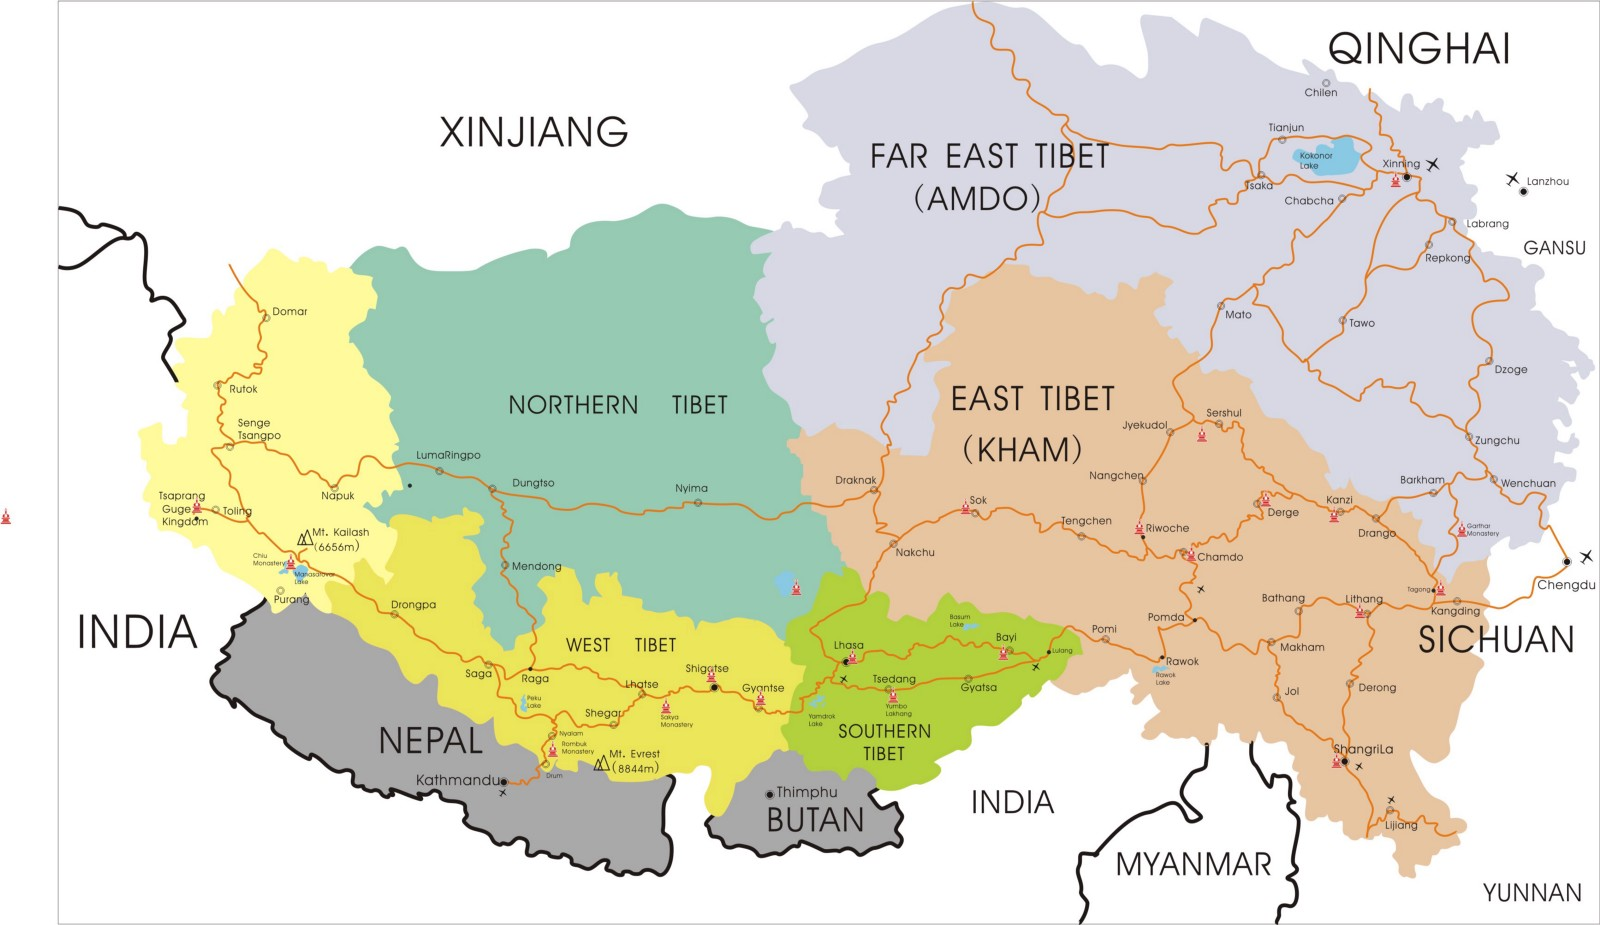 Plateau Of Tibet On Map Of Asia.Tibet Maps Attractions Cities And Transportation In China